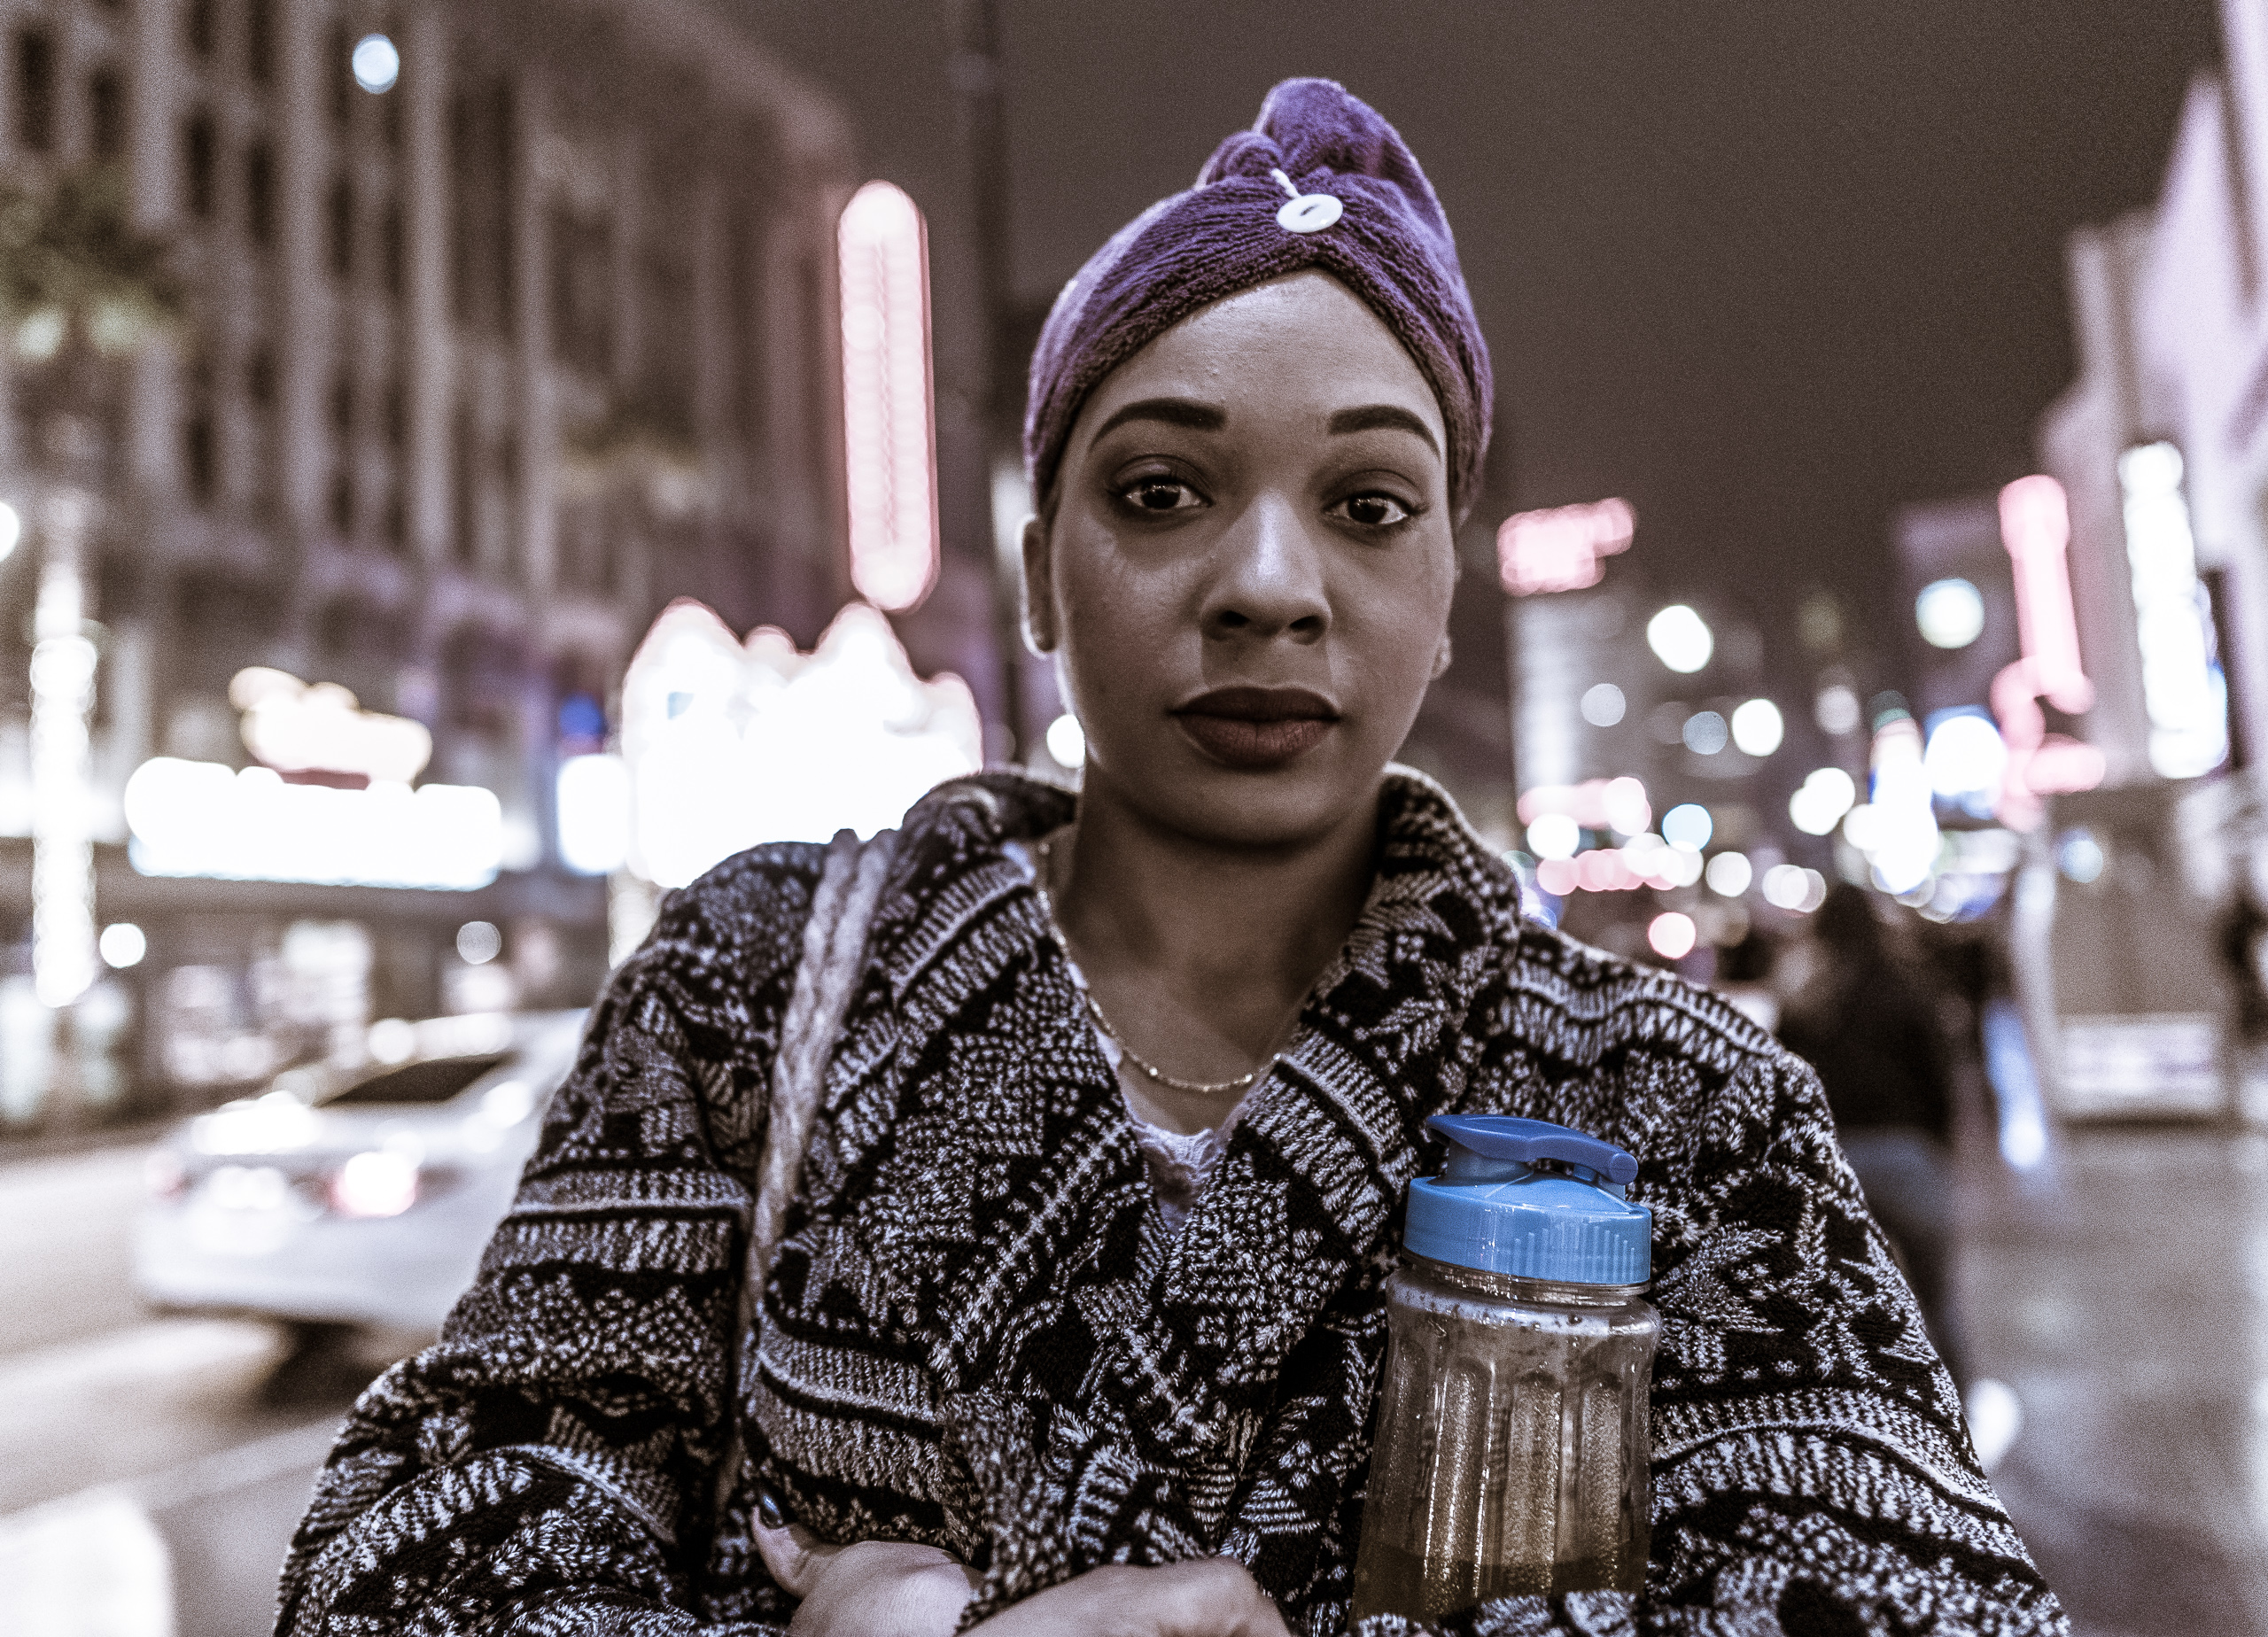 a woman in a purple head scarf looks gently at the camera while standing on the sidewalk at Hollywood Blvd.